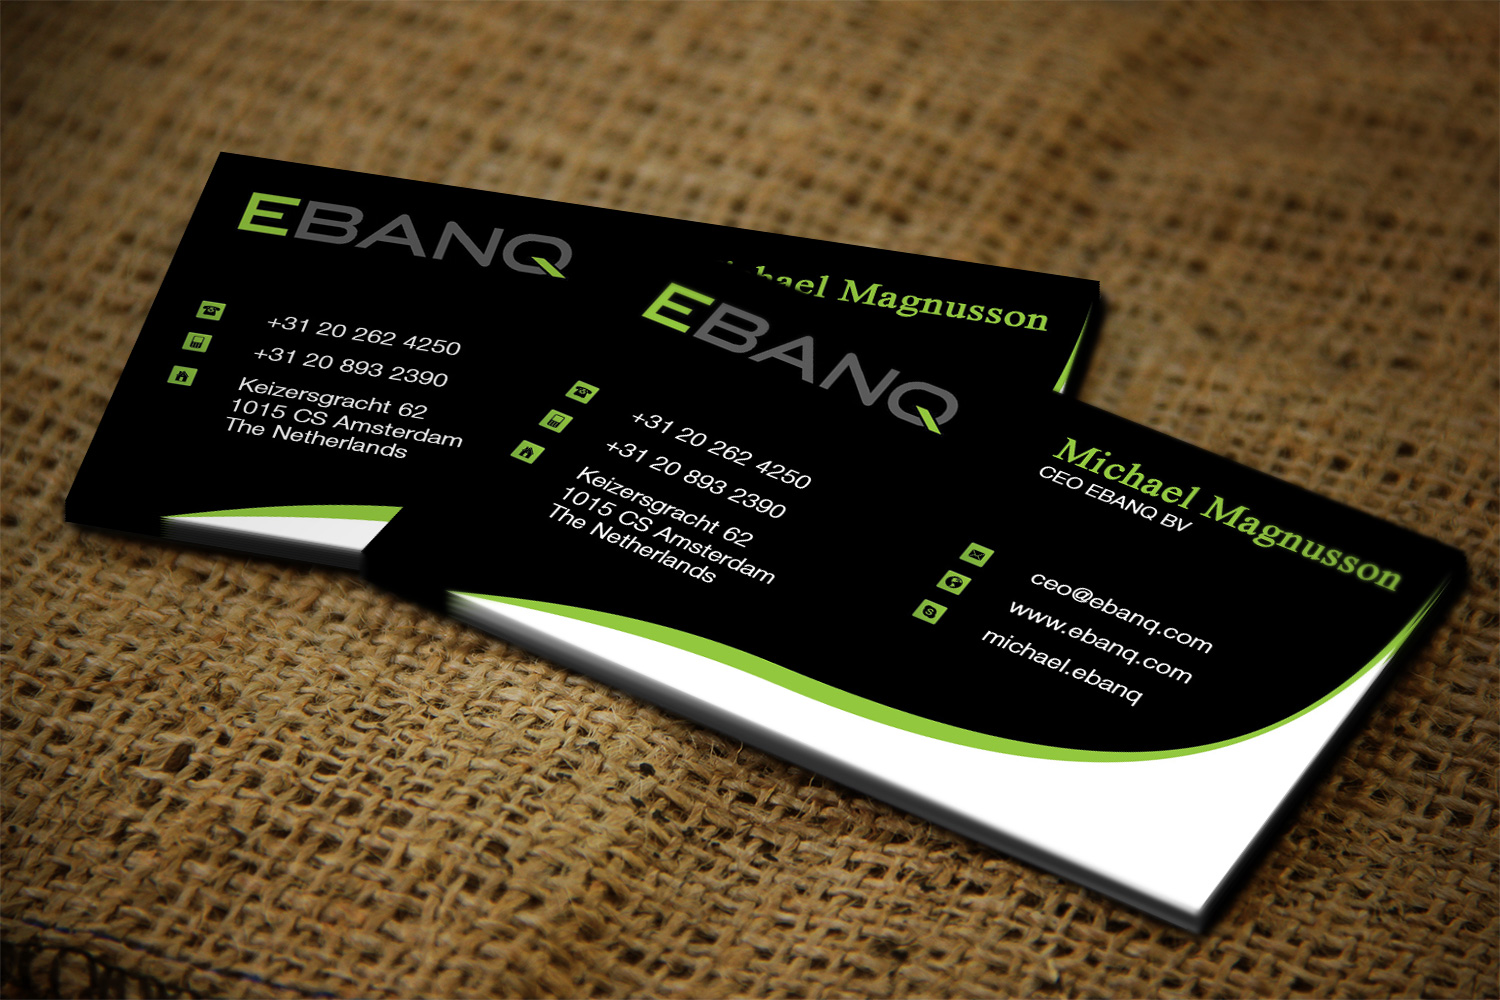 Modern professional financial business card design for ebanq business card design by creation lanka for ebanq fintech sl design 5088214 reheart Image collections